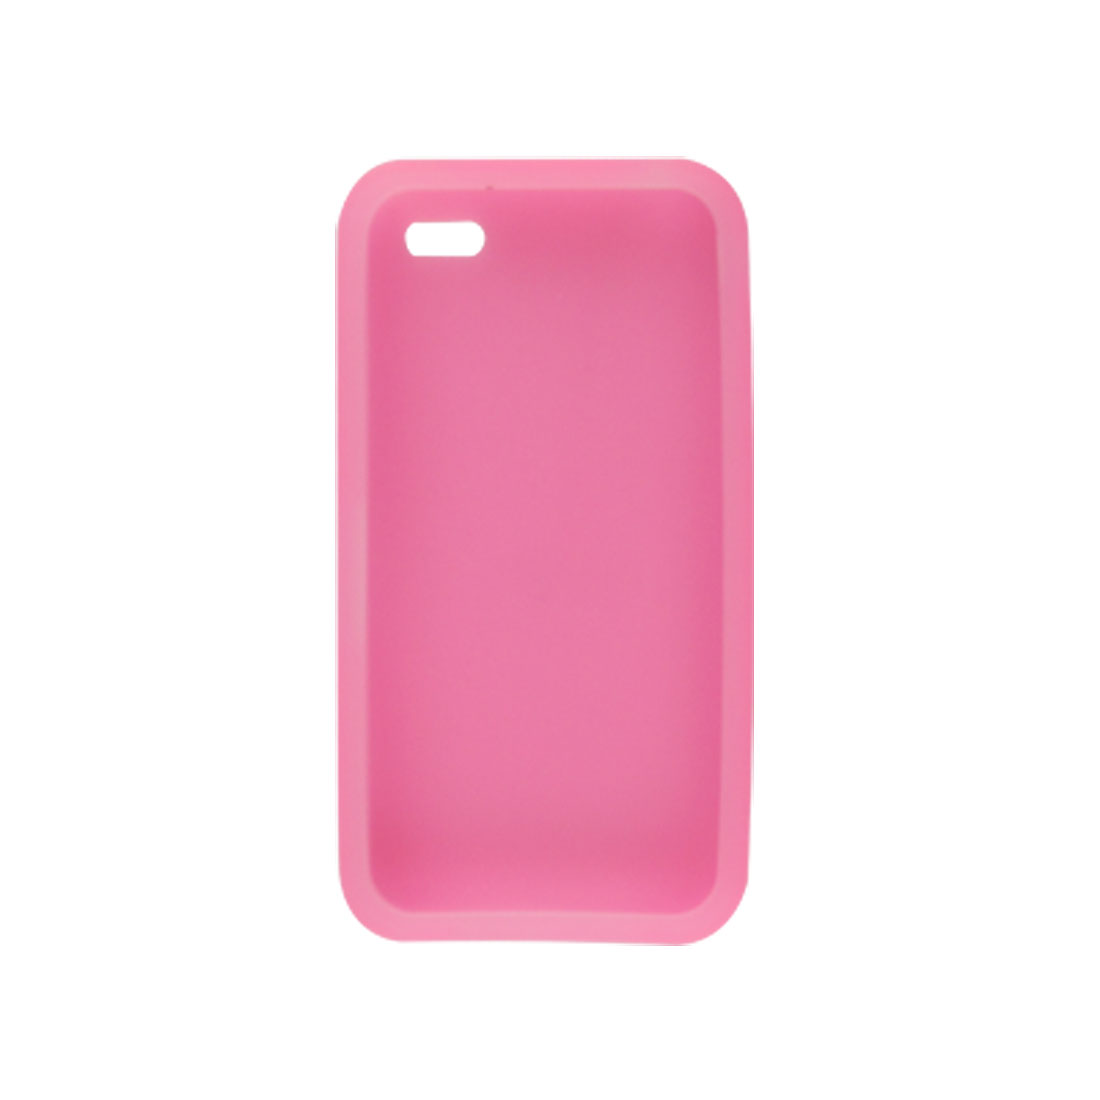 Pink Silicone Skin Soft Case Shell for Apple iPhone 4 4G